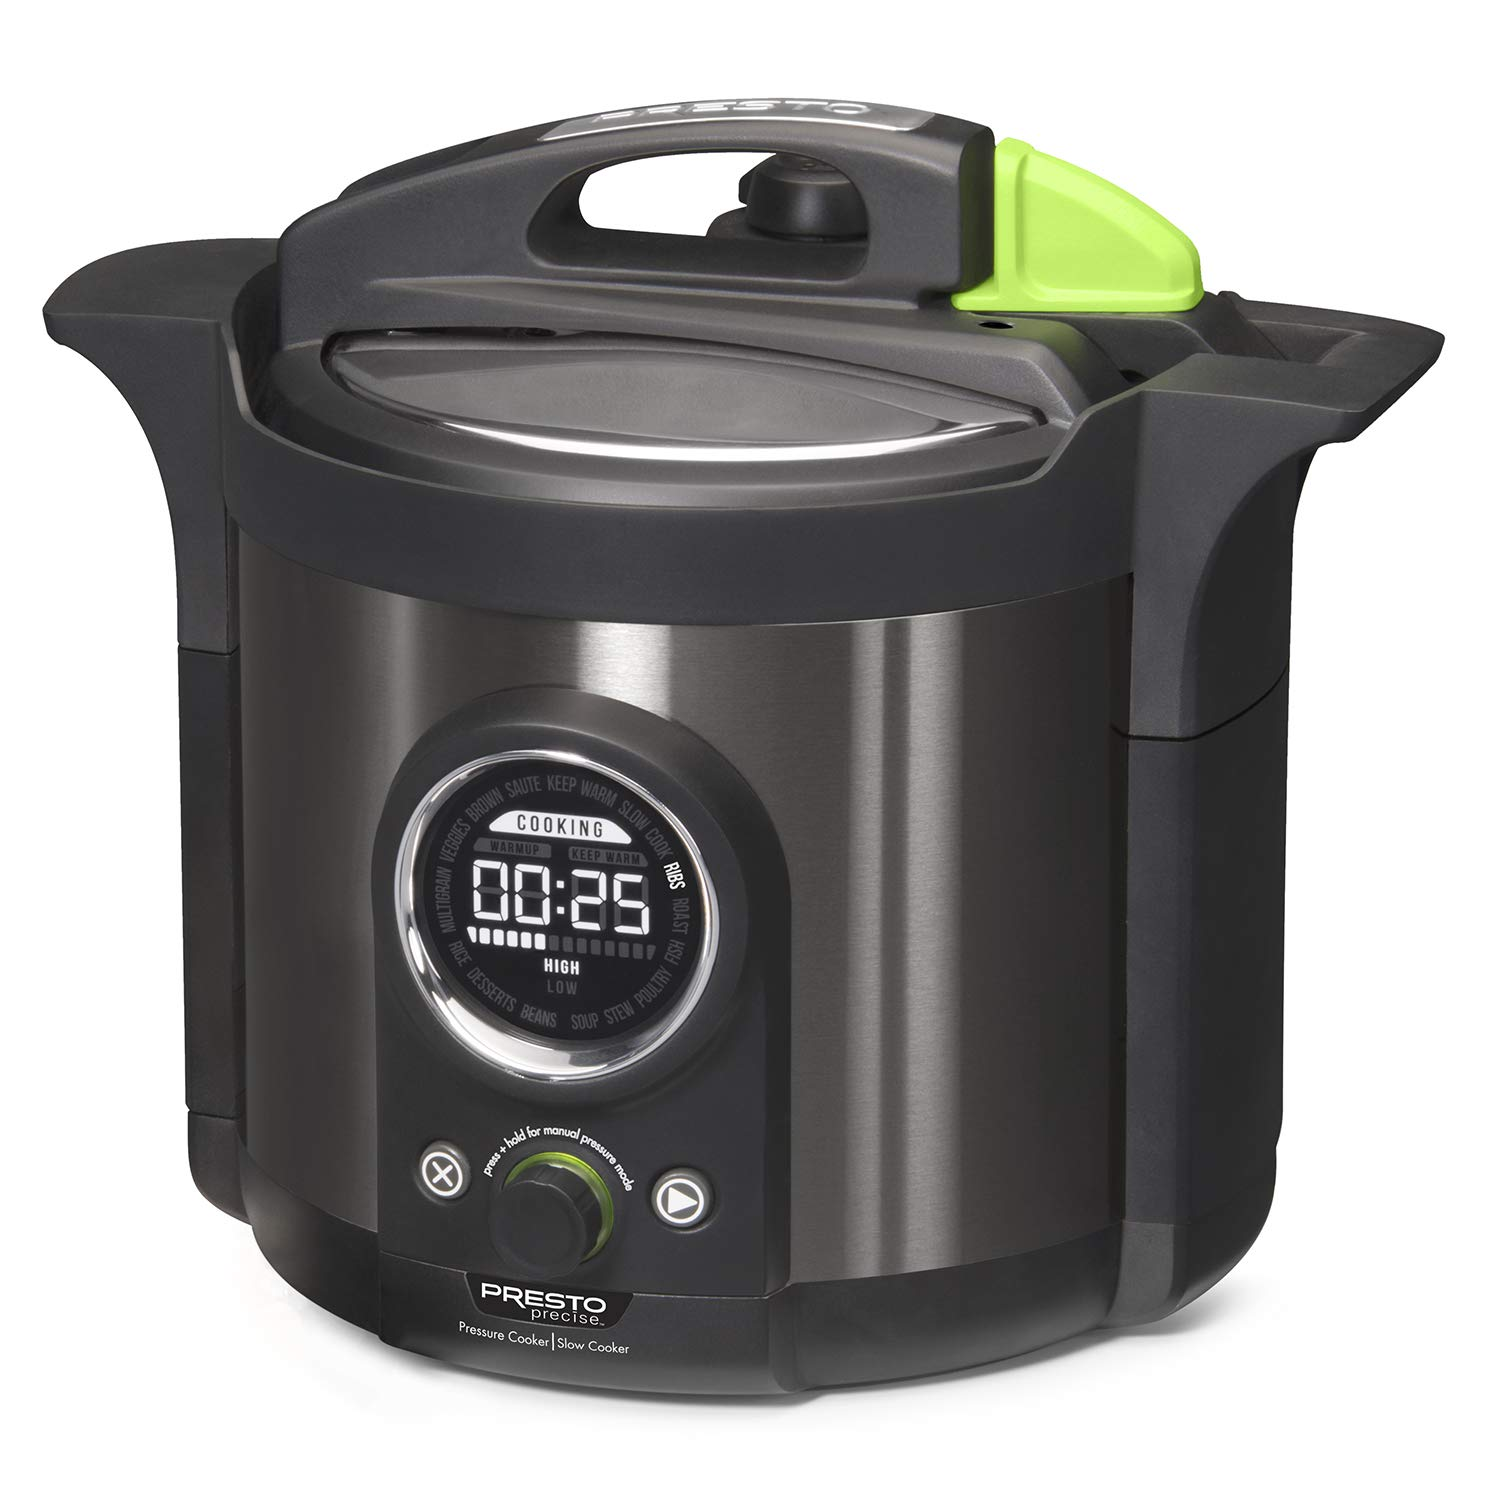 Presto 02142 Precise 6-Quart Multi-use Programmable Plus Electric Pressure Cooker 6qt Black Stainless Steel